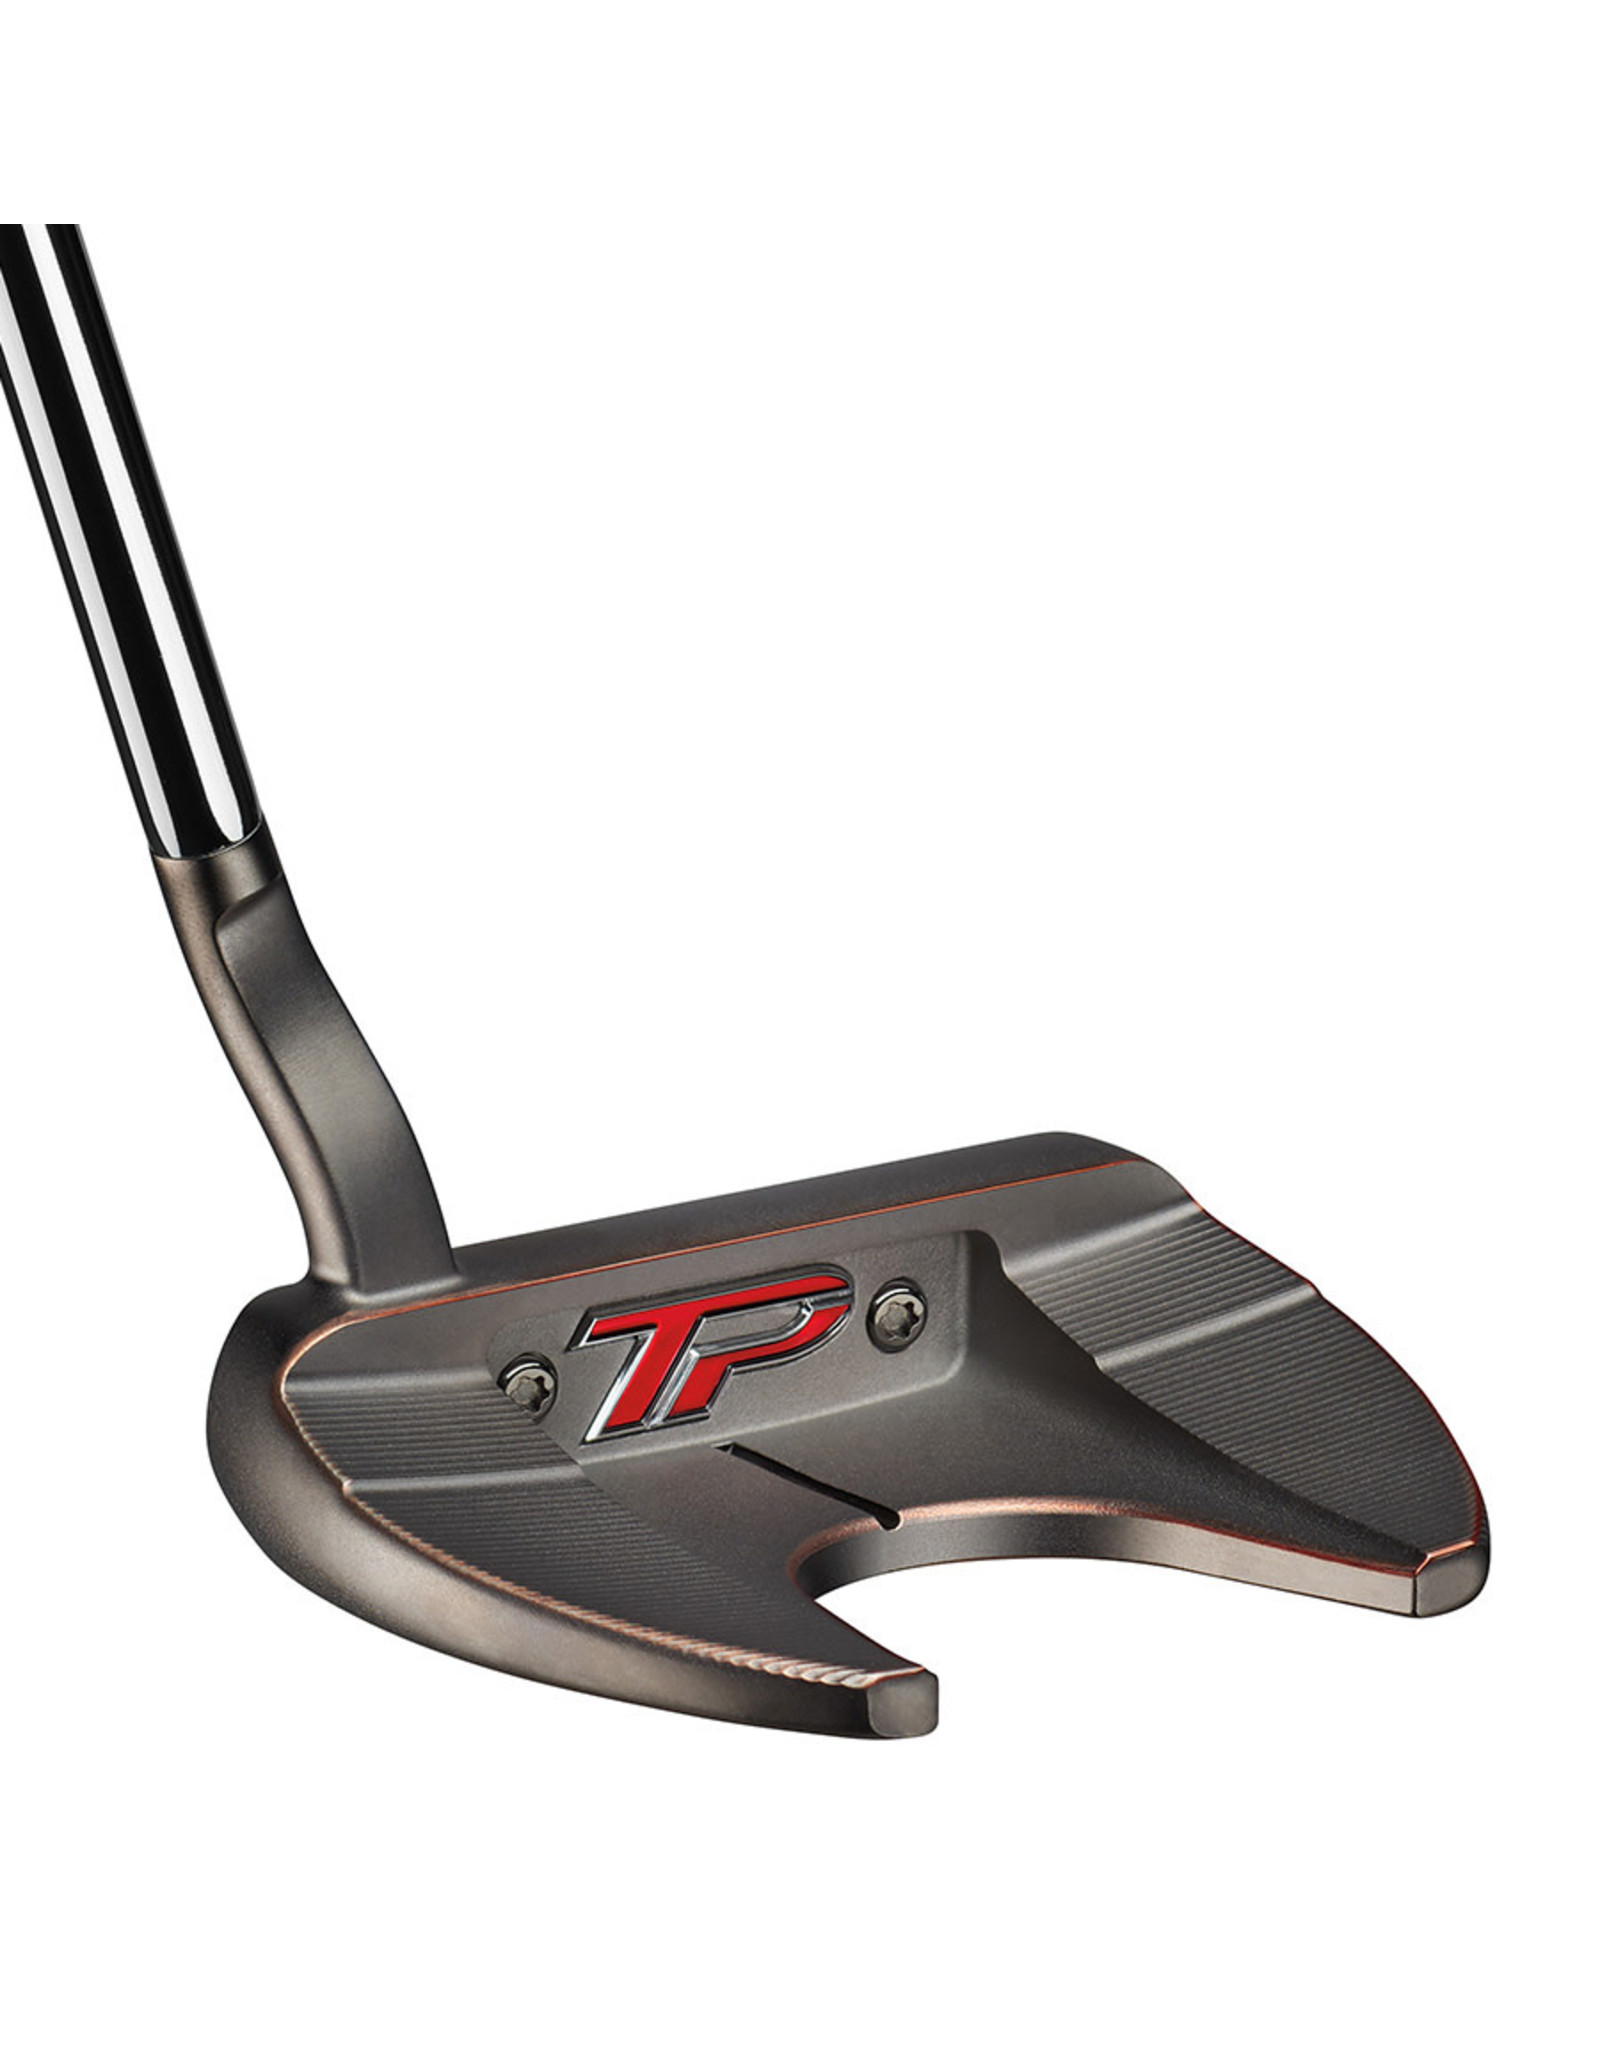 Taylormade Taylormade TP collection Putters